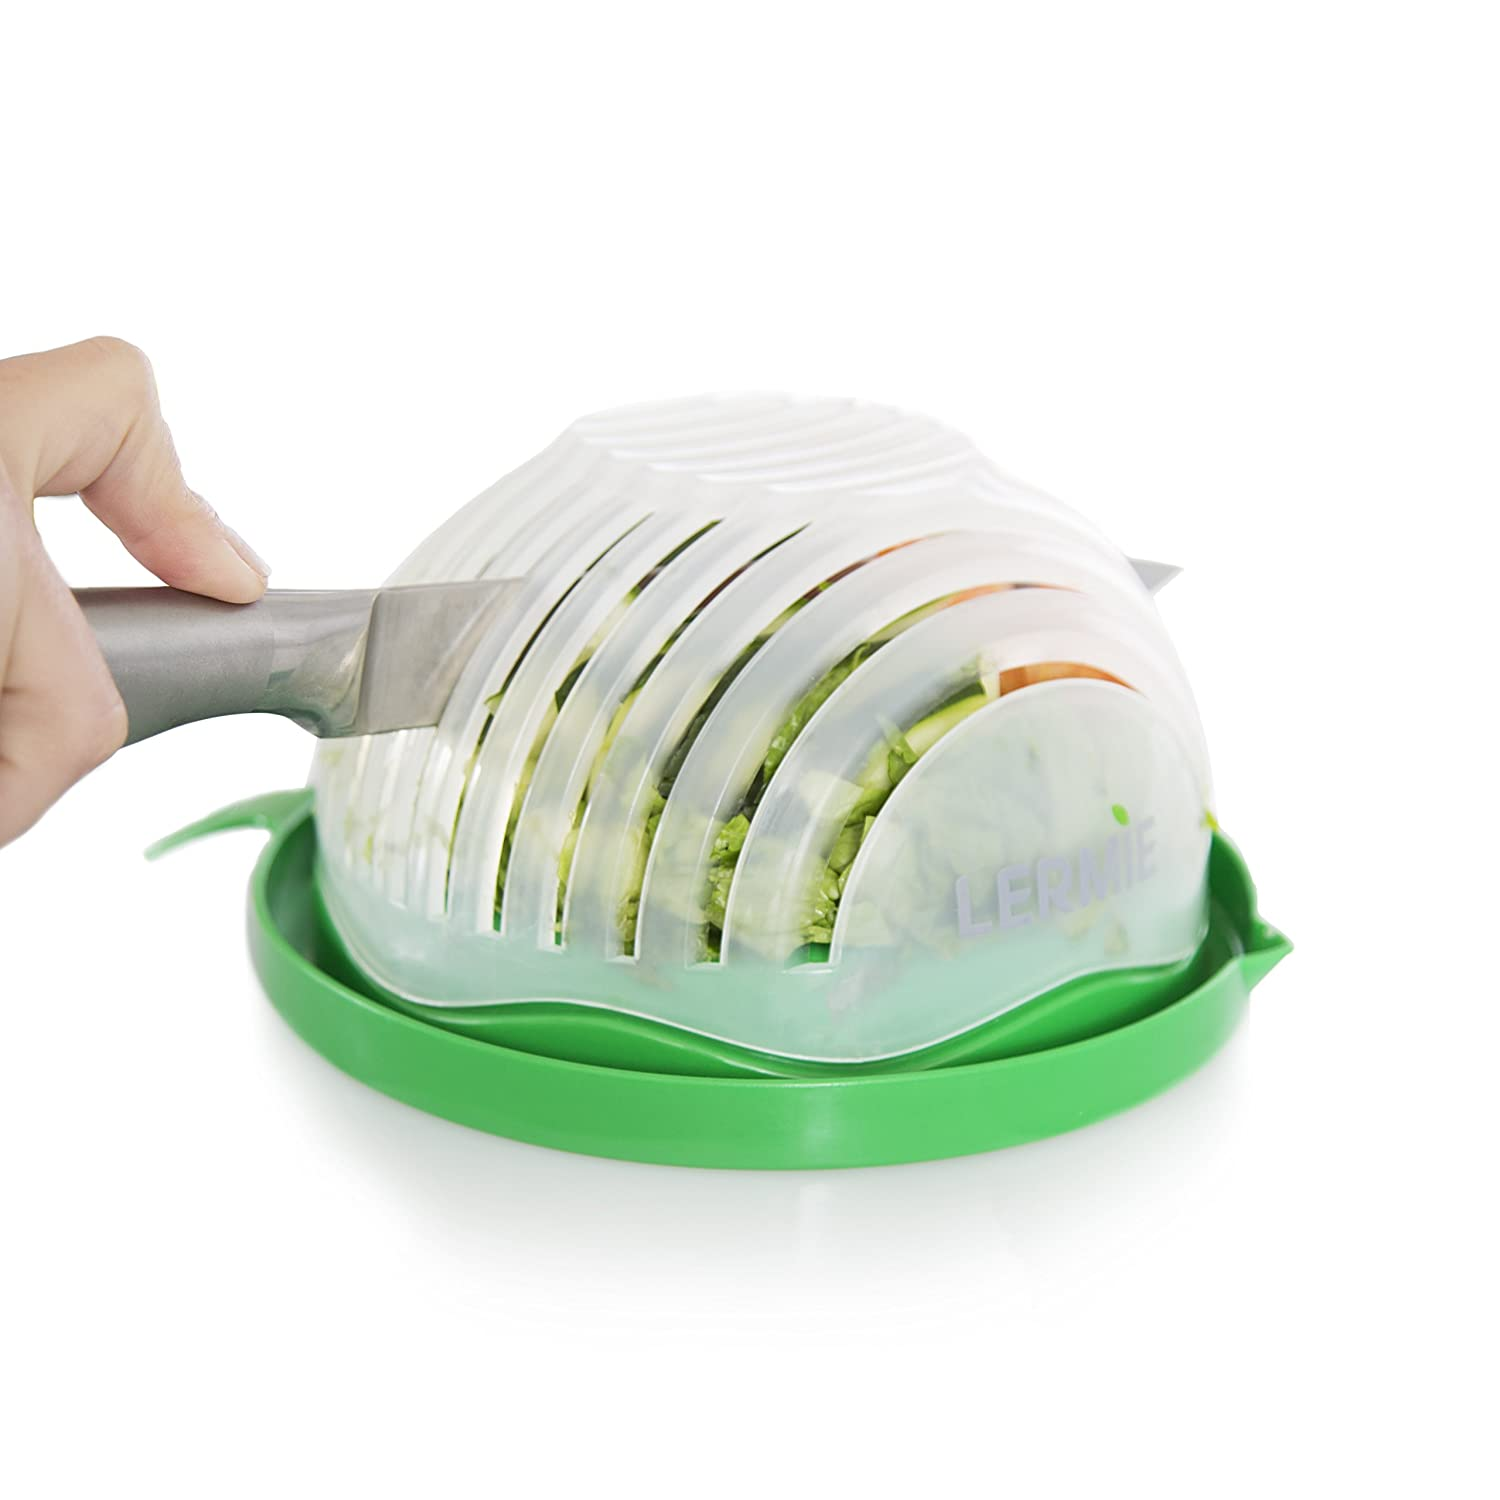 Lermie Salad Cutter Bowl: 60 Second Salad Maker, Easy And Fast Vegetable Chopper And Slicer For Veggies, Lettuce And Fruit, Cutting Board, Strainer And Dicer All-In-1, Dishwasher Safe – BPA Free L02A52